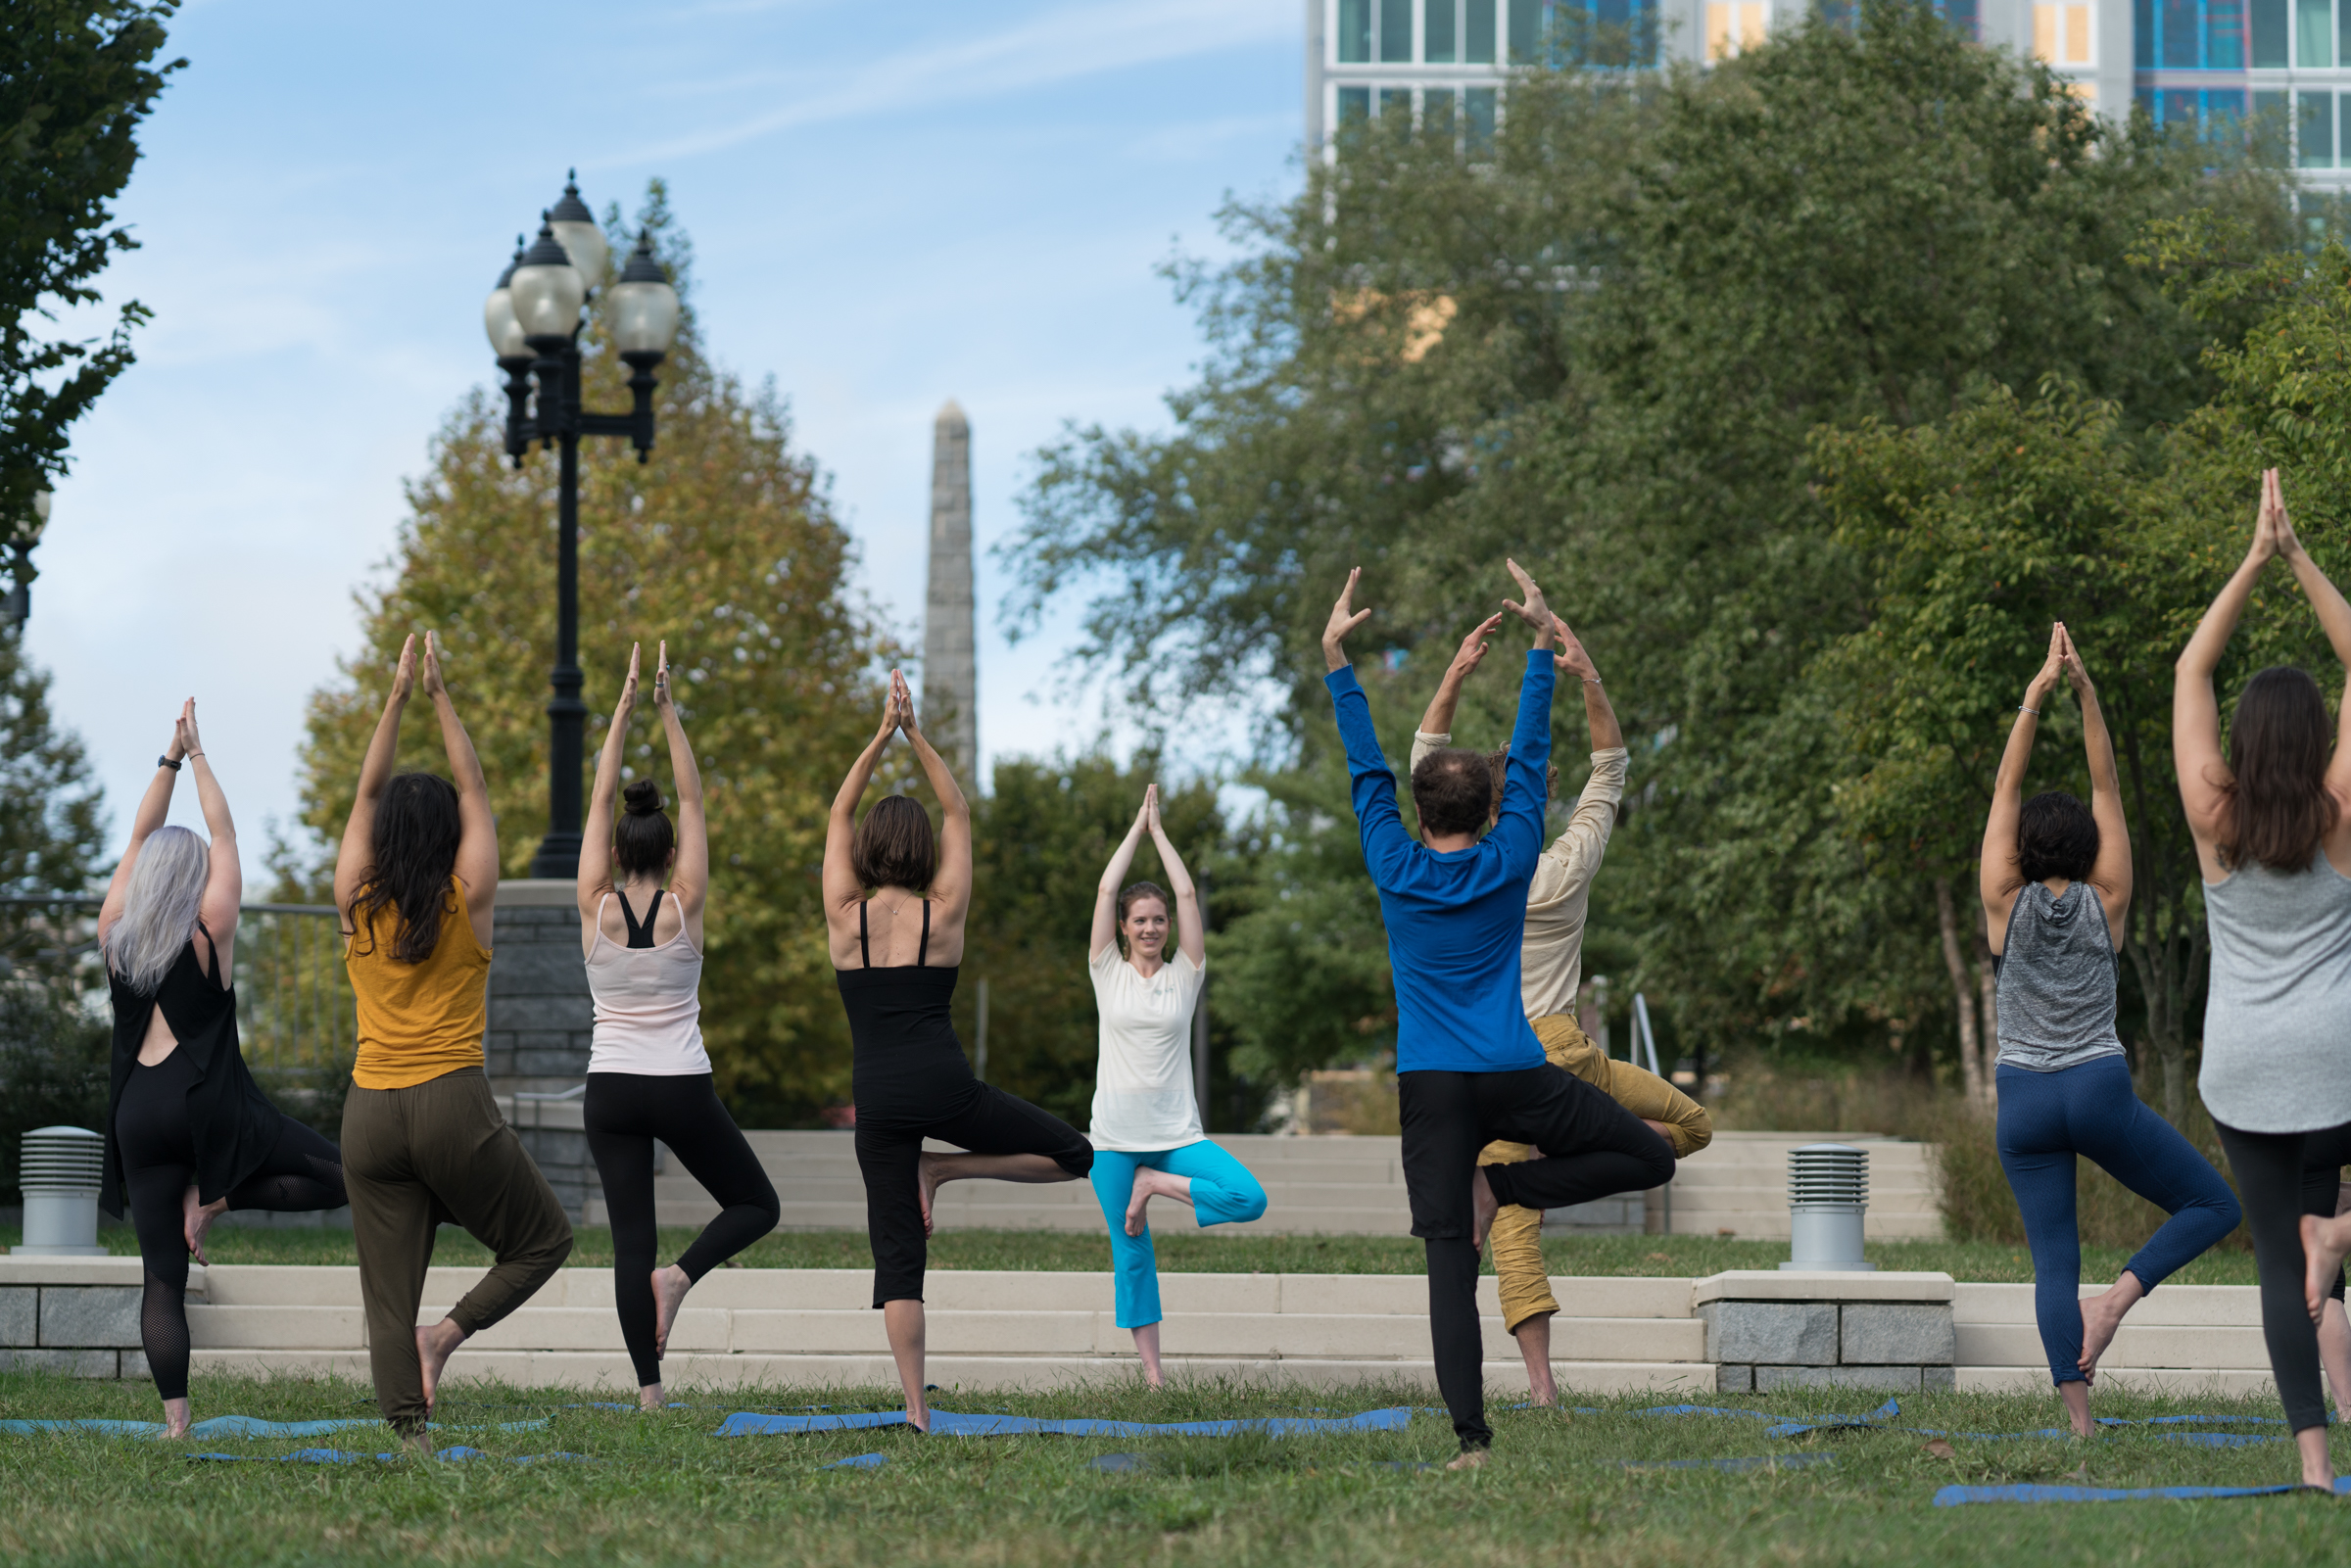 Downtown Walking Tour Asheville - Yoga in the Park